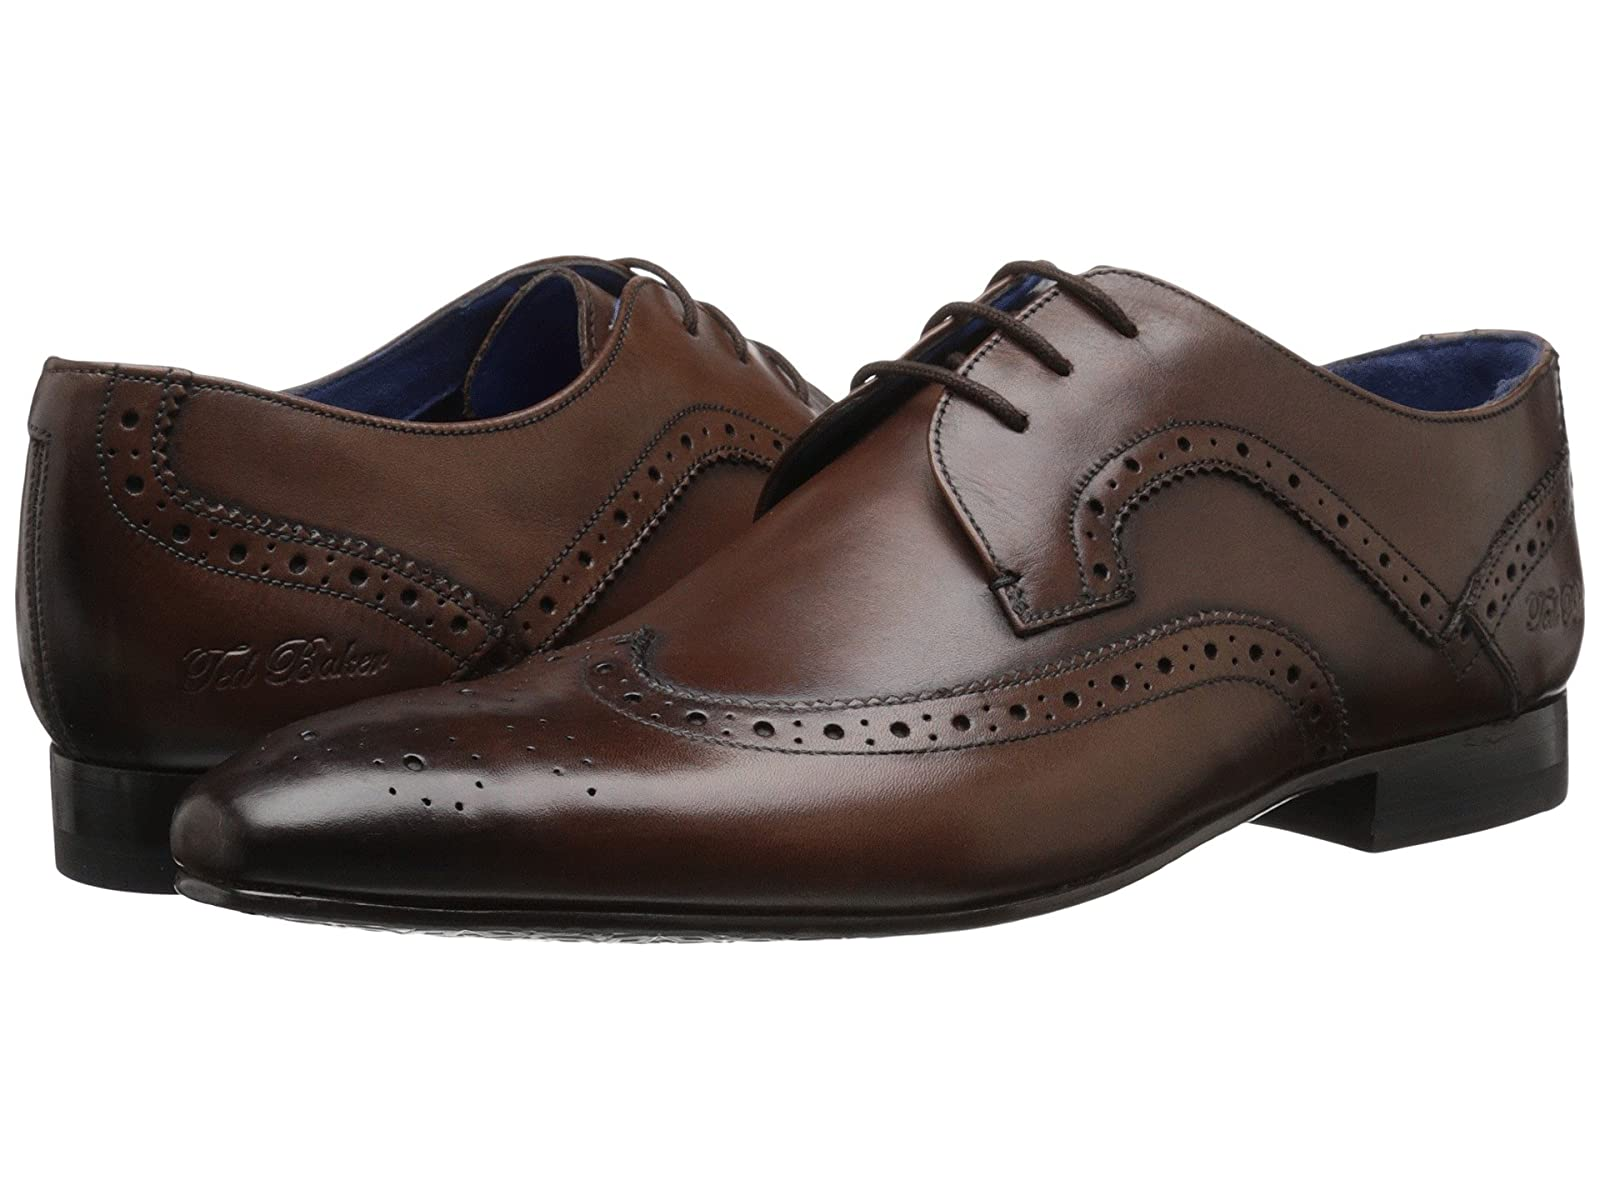 Ted Baker OakkeAtmospheric grades have affordable shoes